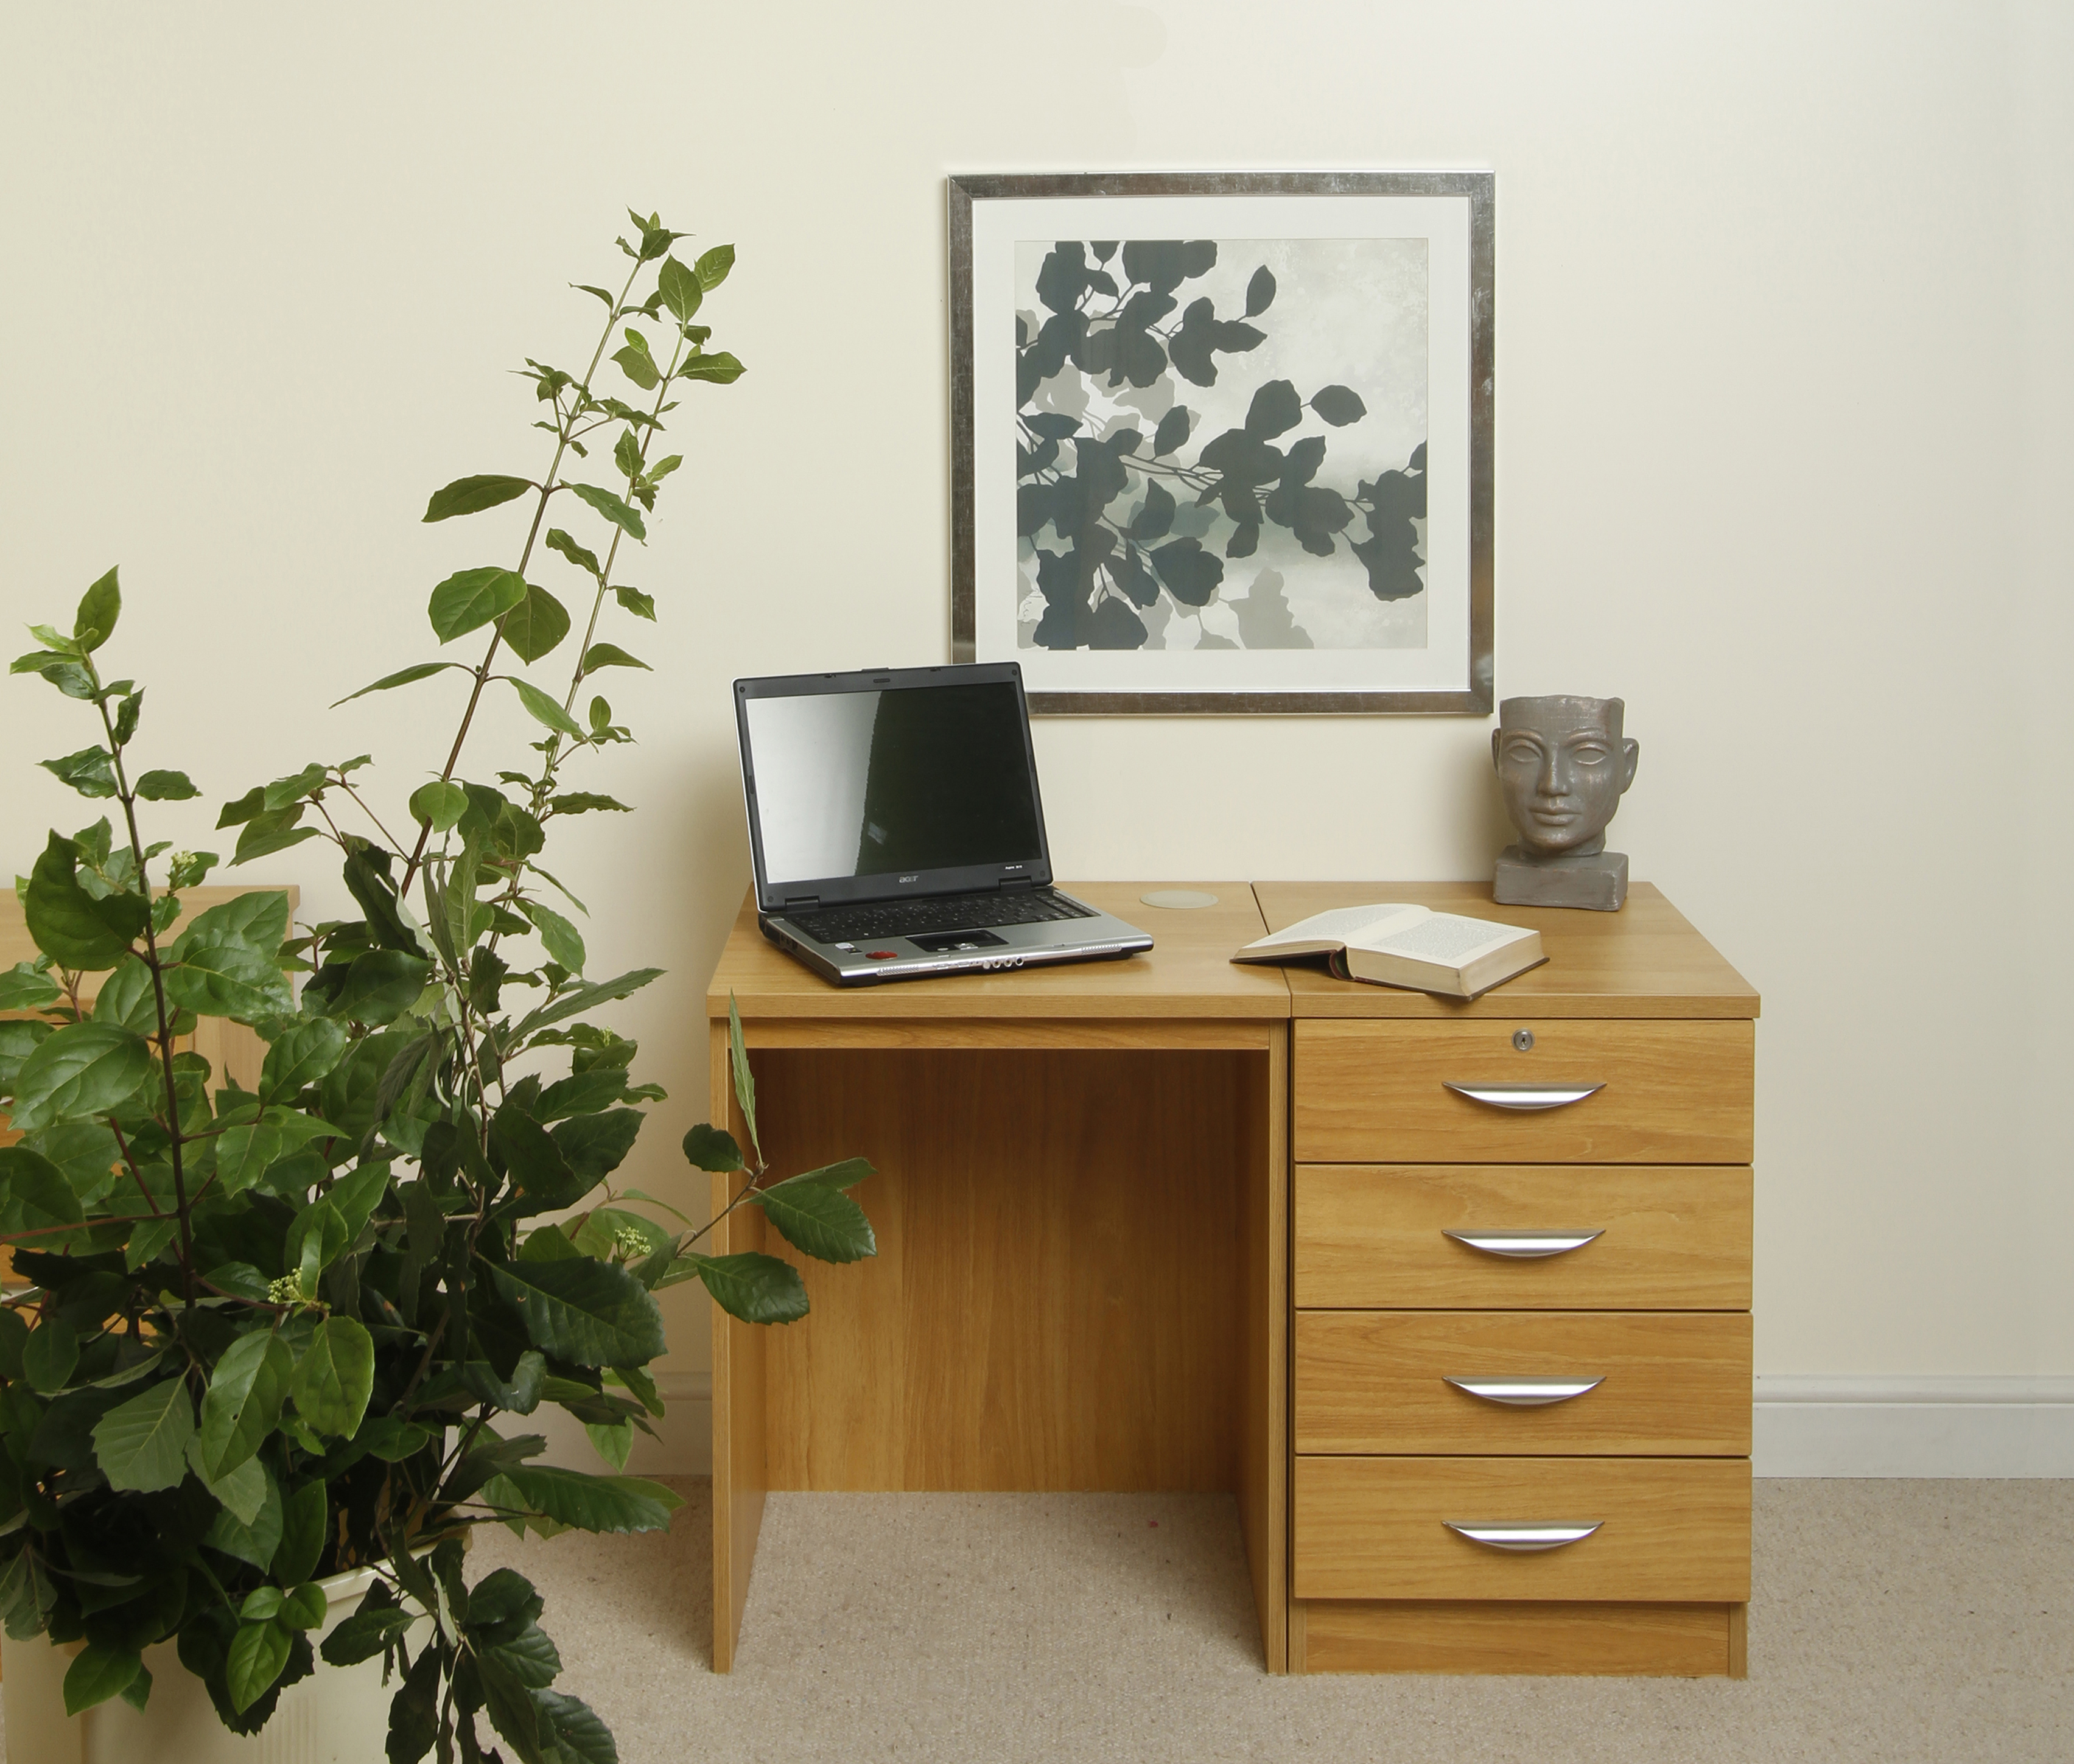 diy fitted office furniture. If You Need Any Assistance Please Do Not Hesitate To Contact Us On 01329 822522 Or Email Info@office-kit.co.uk. Diy Fitted Office Furniture